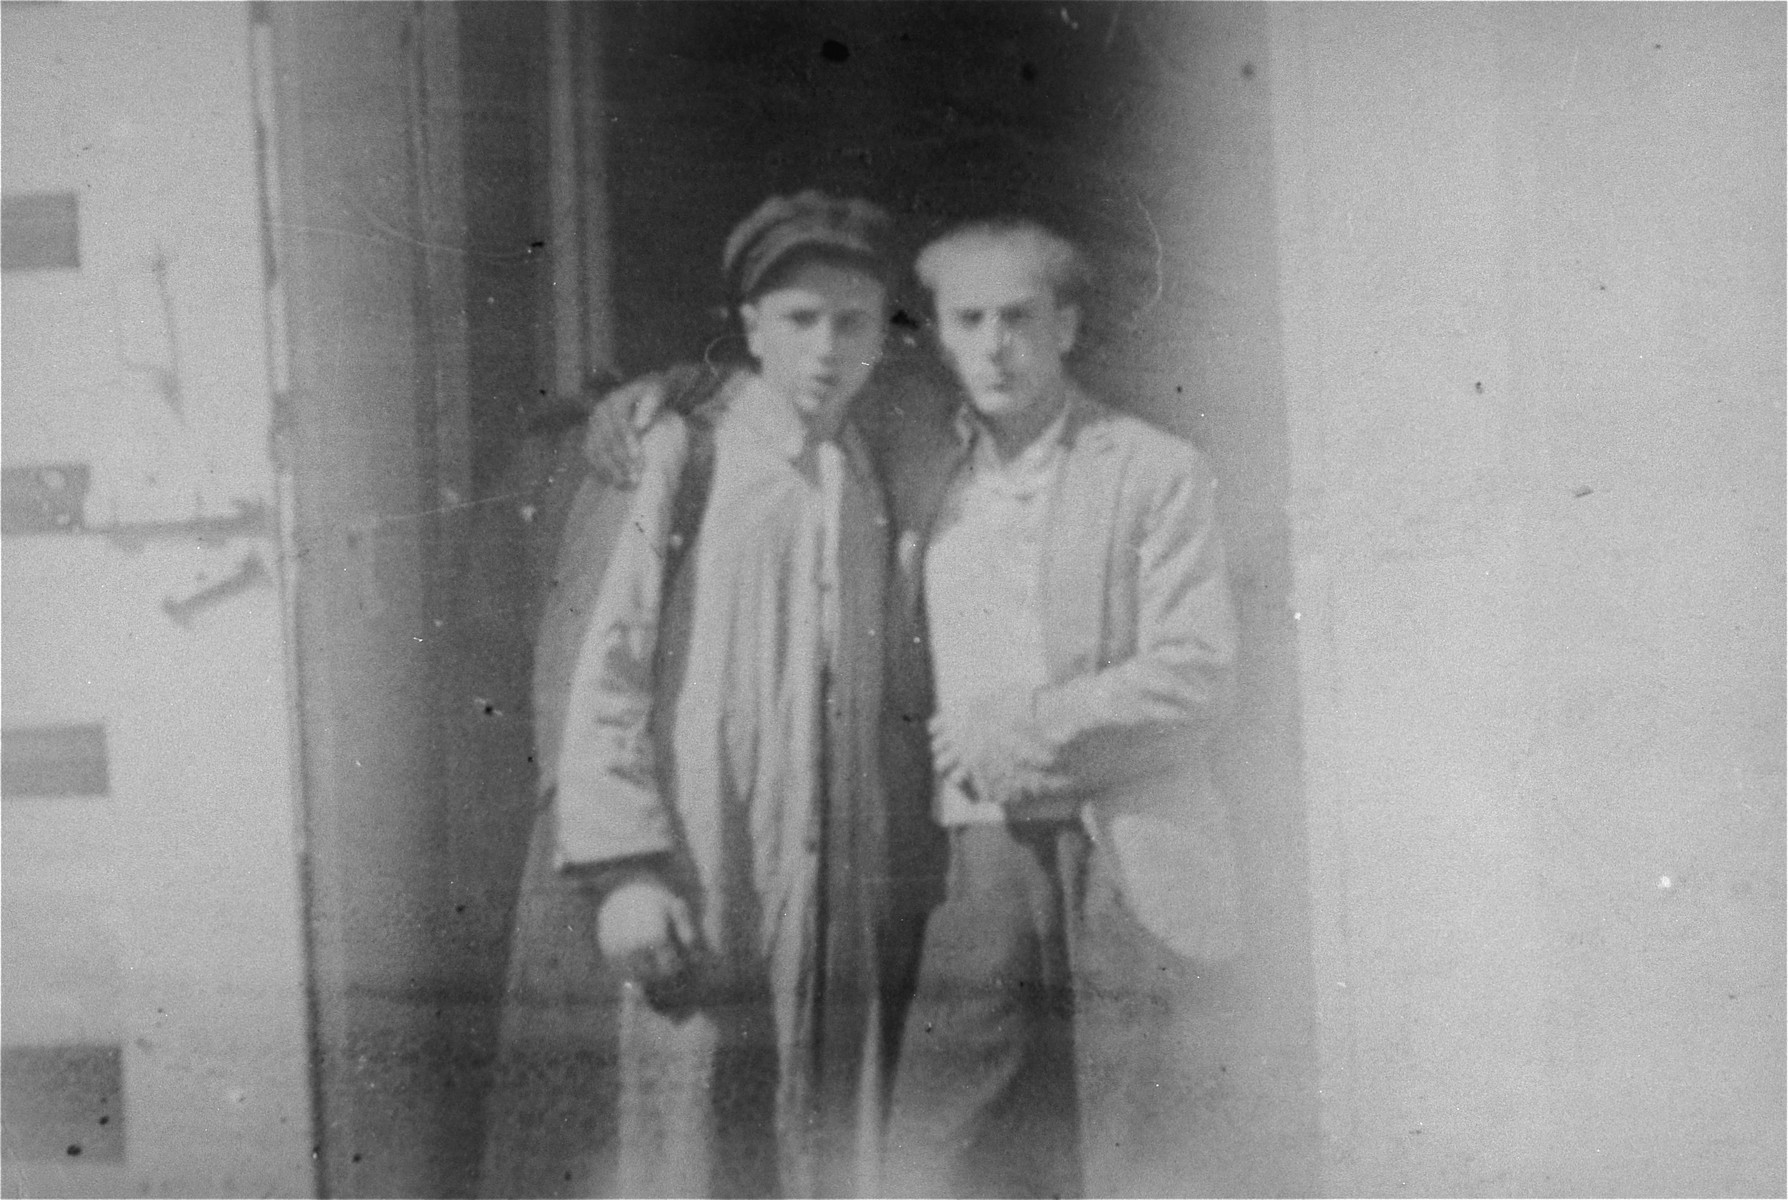 Two Jewish youth who are posing as Poles stand outside in a doorway on the Aryan side of Warsaw.  Pictured are Ignacy (Byczek) Milchberg (left) and Izaak (Zbyszek) Grynberg (right), two of a group of 20 Jewish children who were living in hiding on the Aryan side of Warsaw and supporting themselves by selling cigarettes in Three Crosses Square.